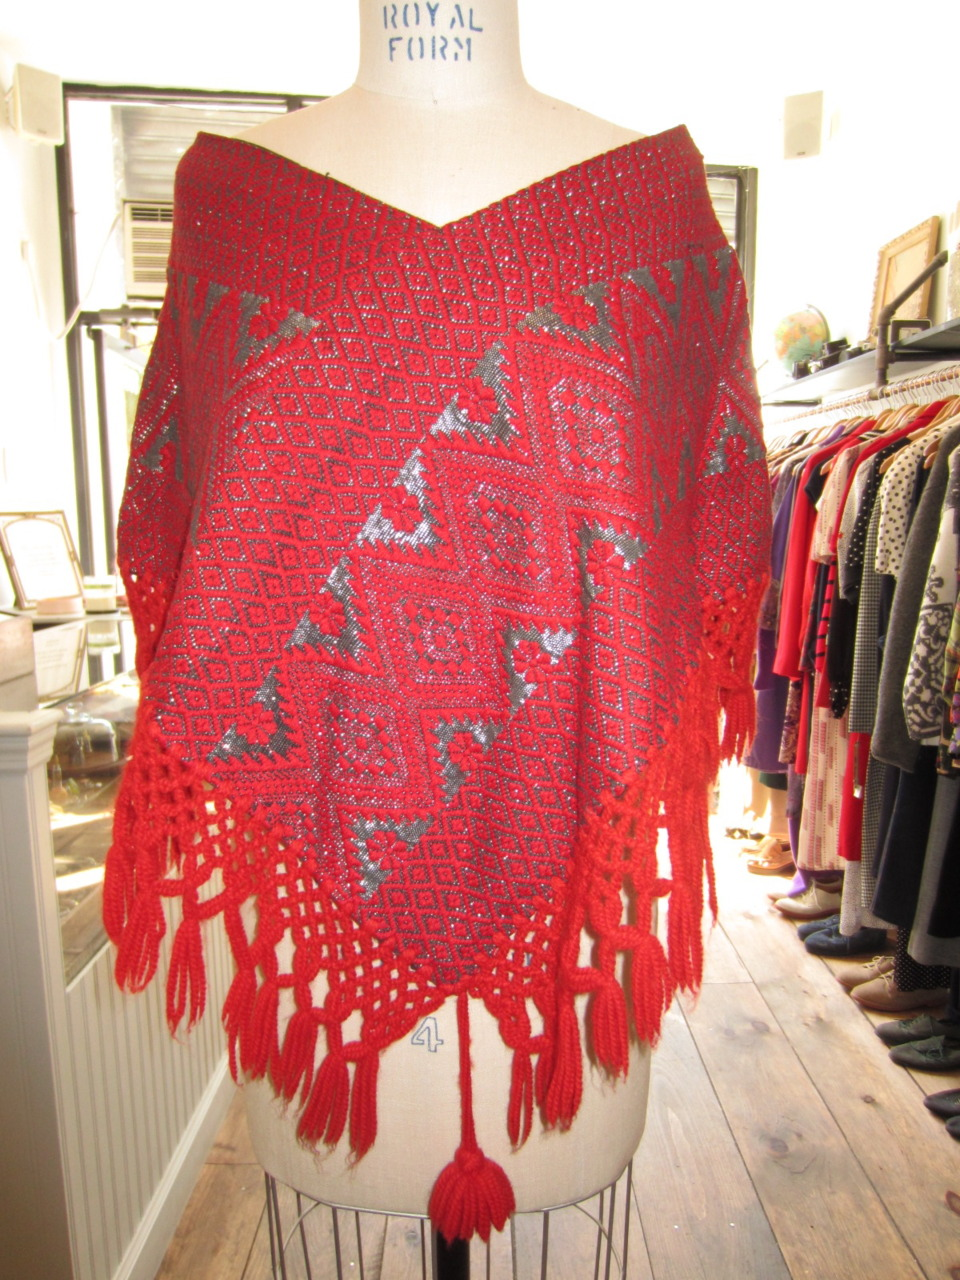 brooklynvintagecrawl: More from Antoinette:  This intricate 1970's handmade poncho is a mere $85